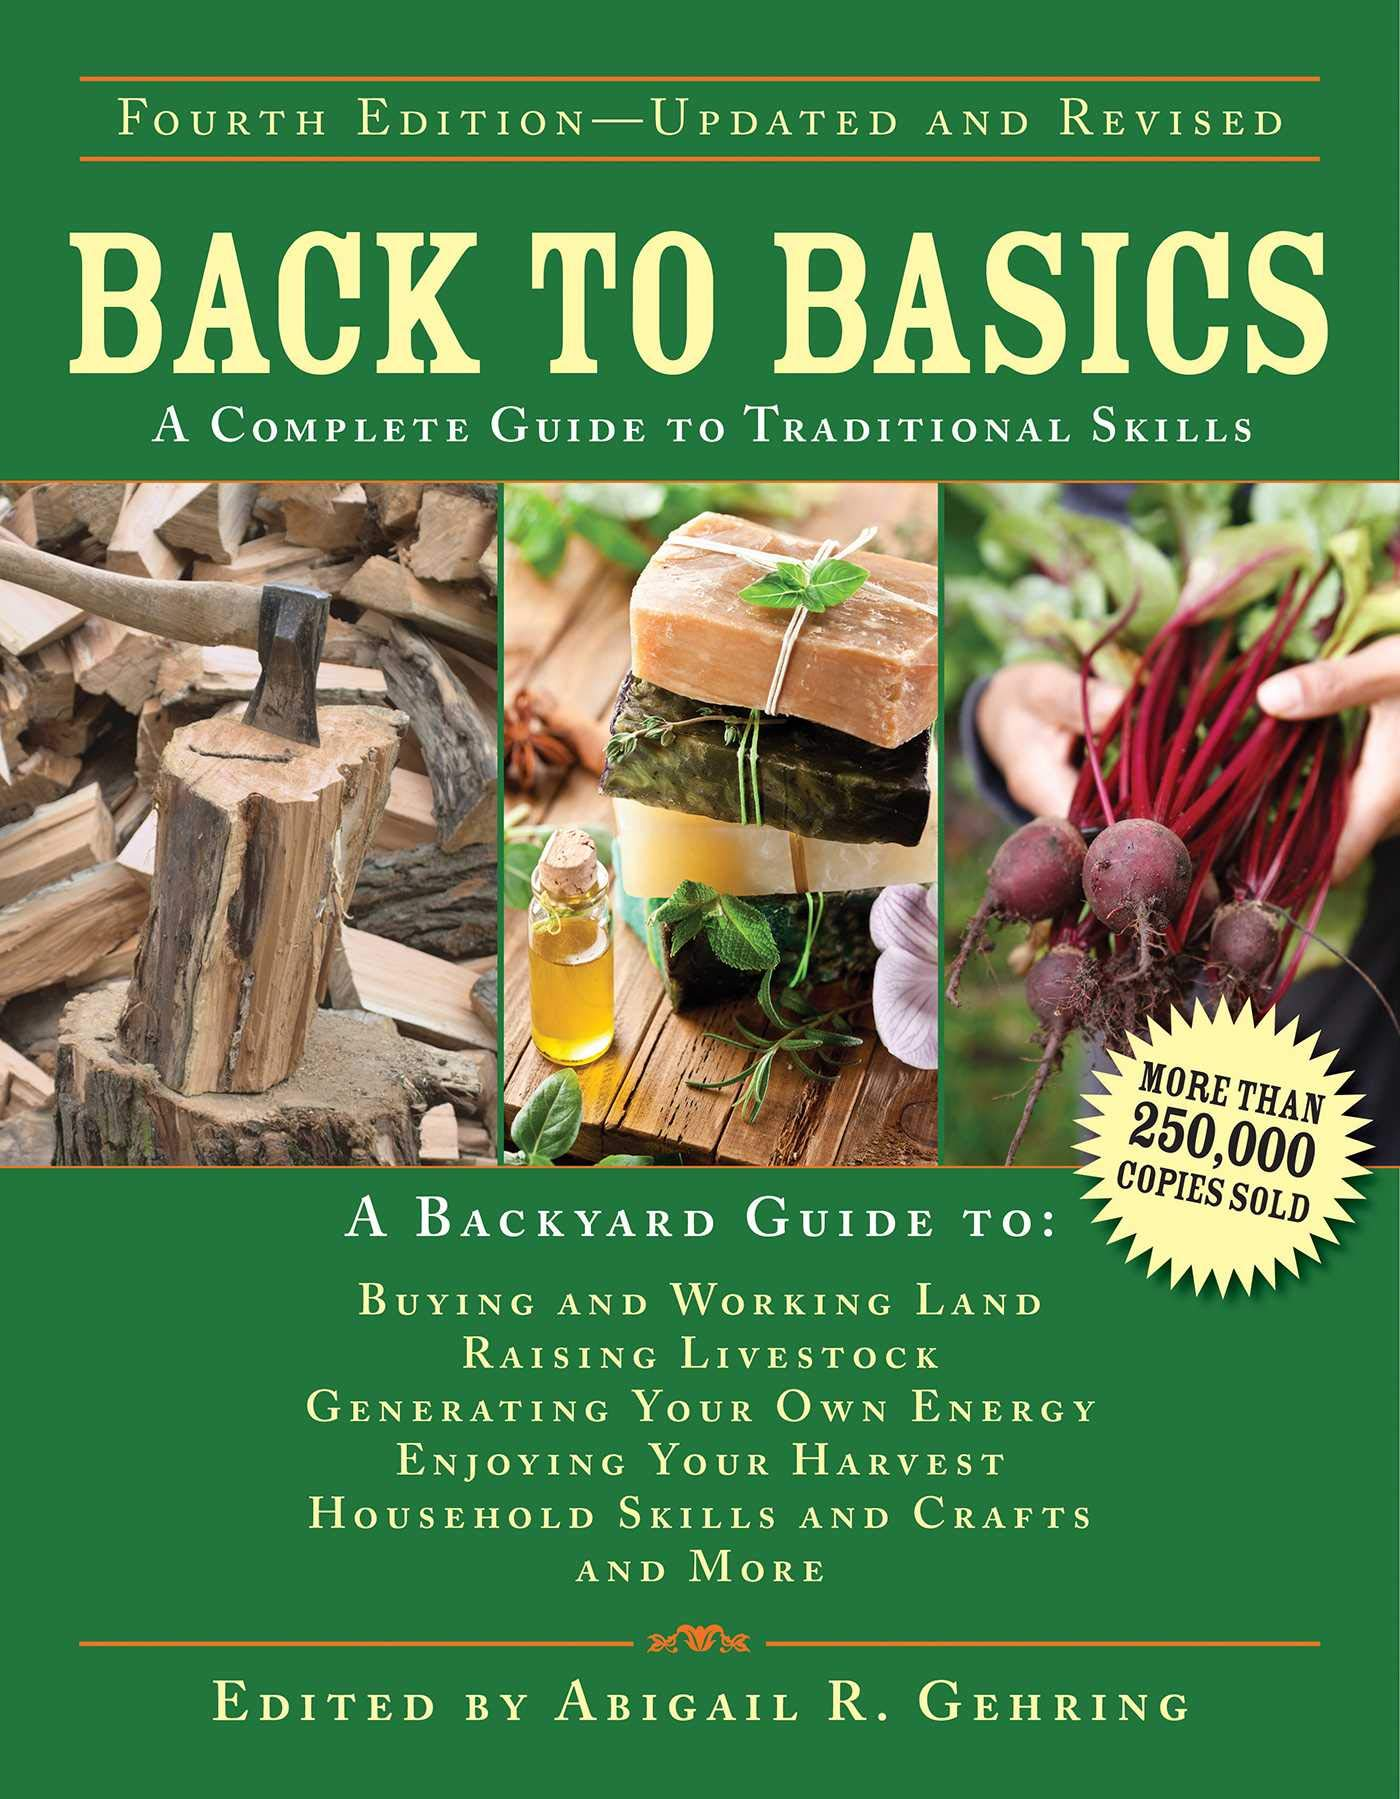 Back to Basics: A Complete Guide to Traditional Skills (Back to Basics Guides) by Skyhorse